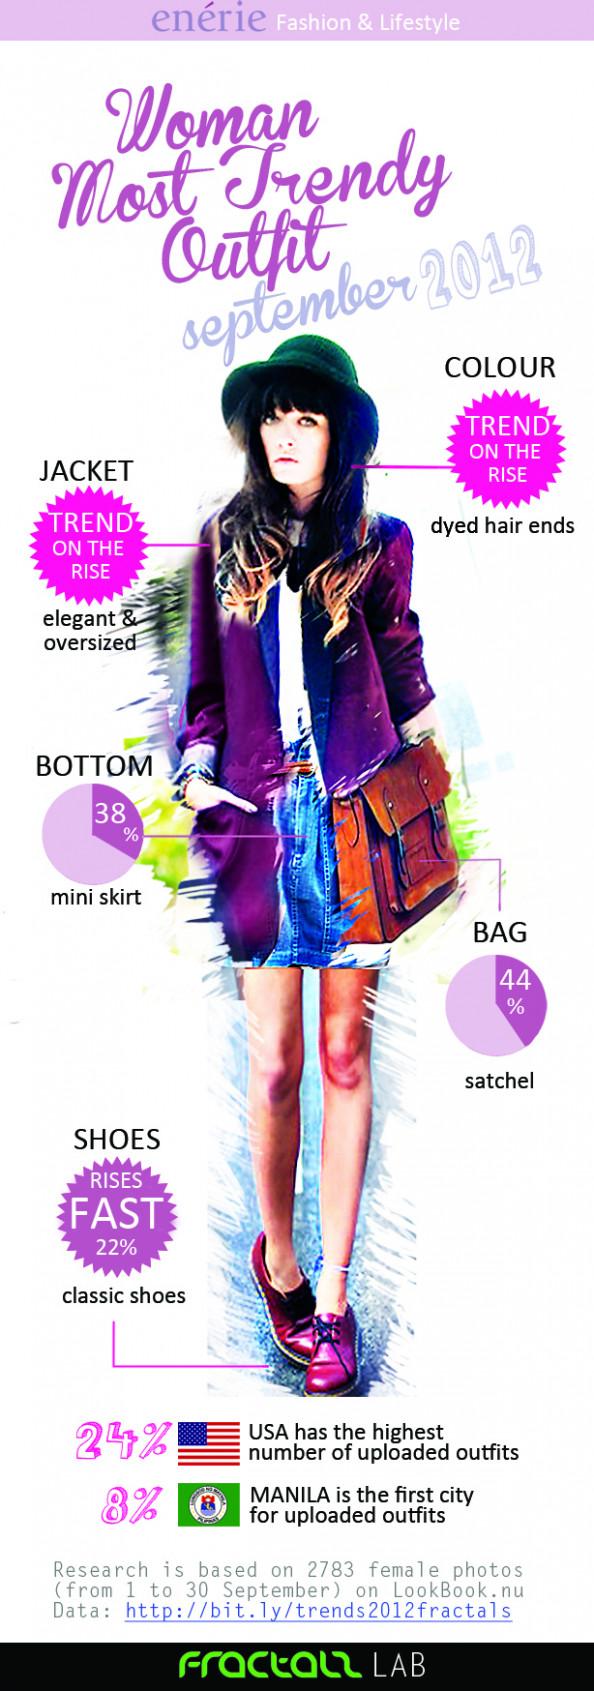 Woman Most Trendy Outfit September 2012 Infographic